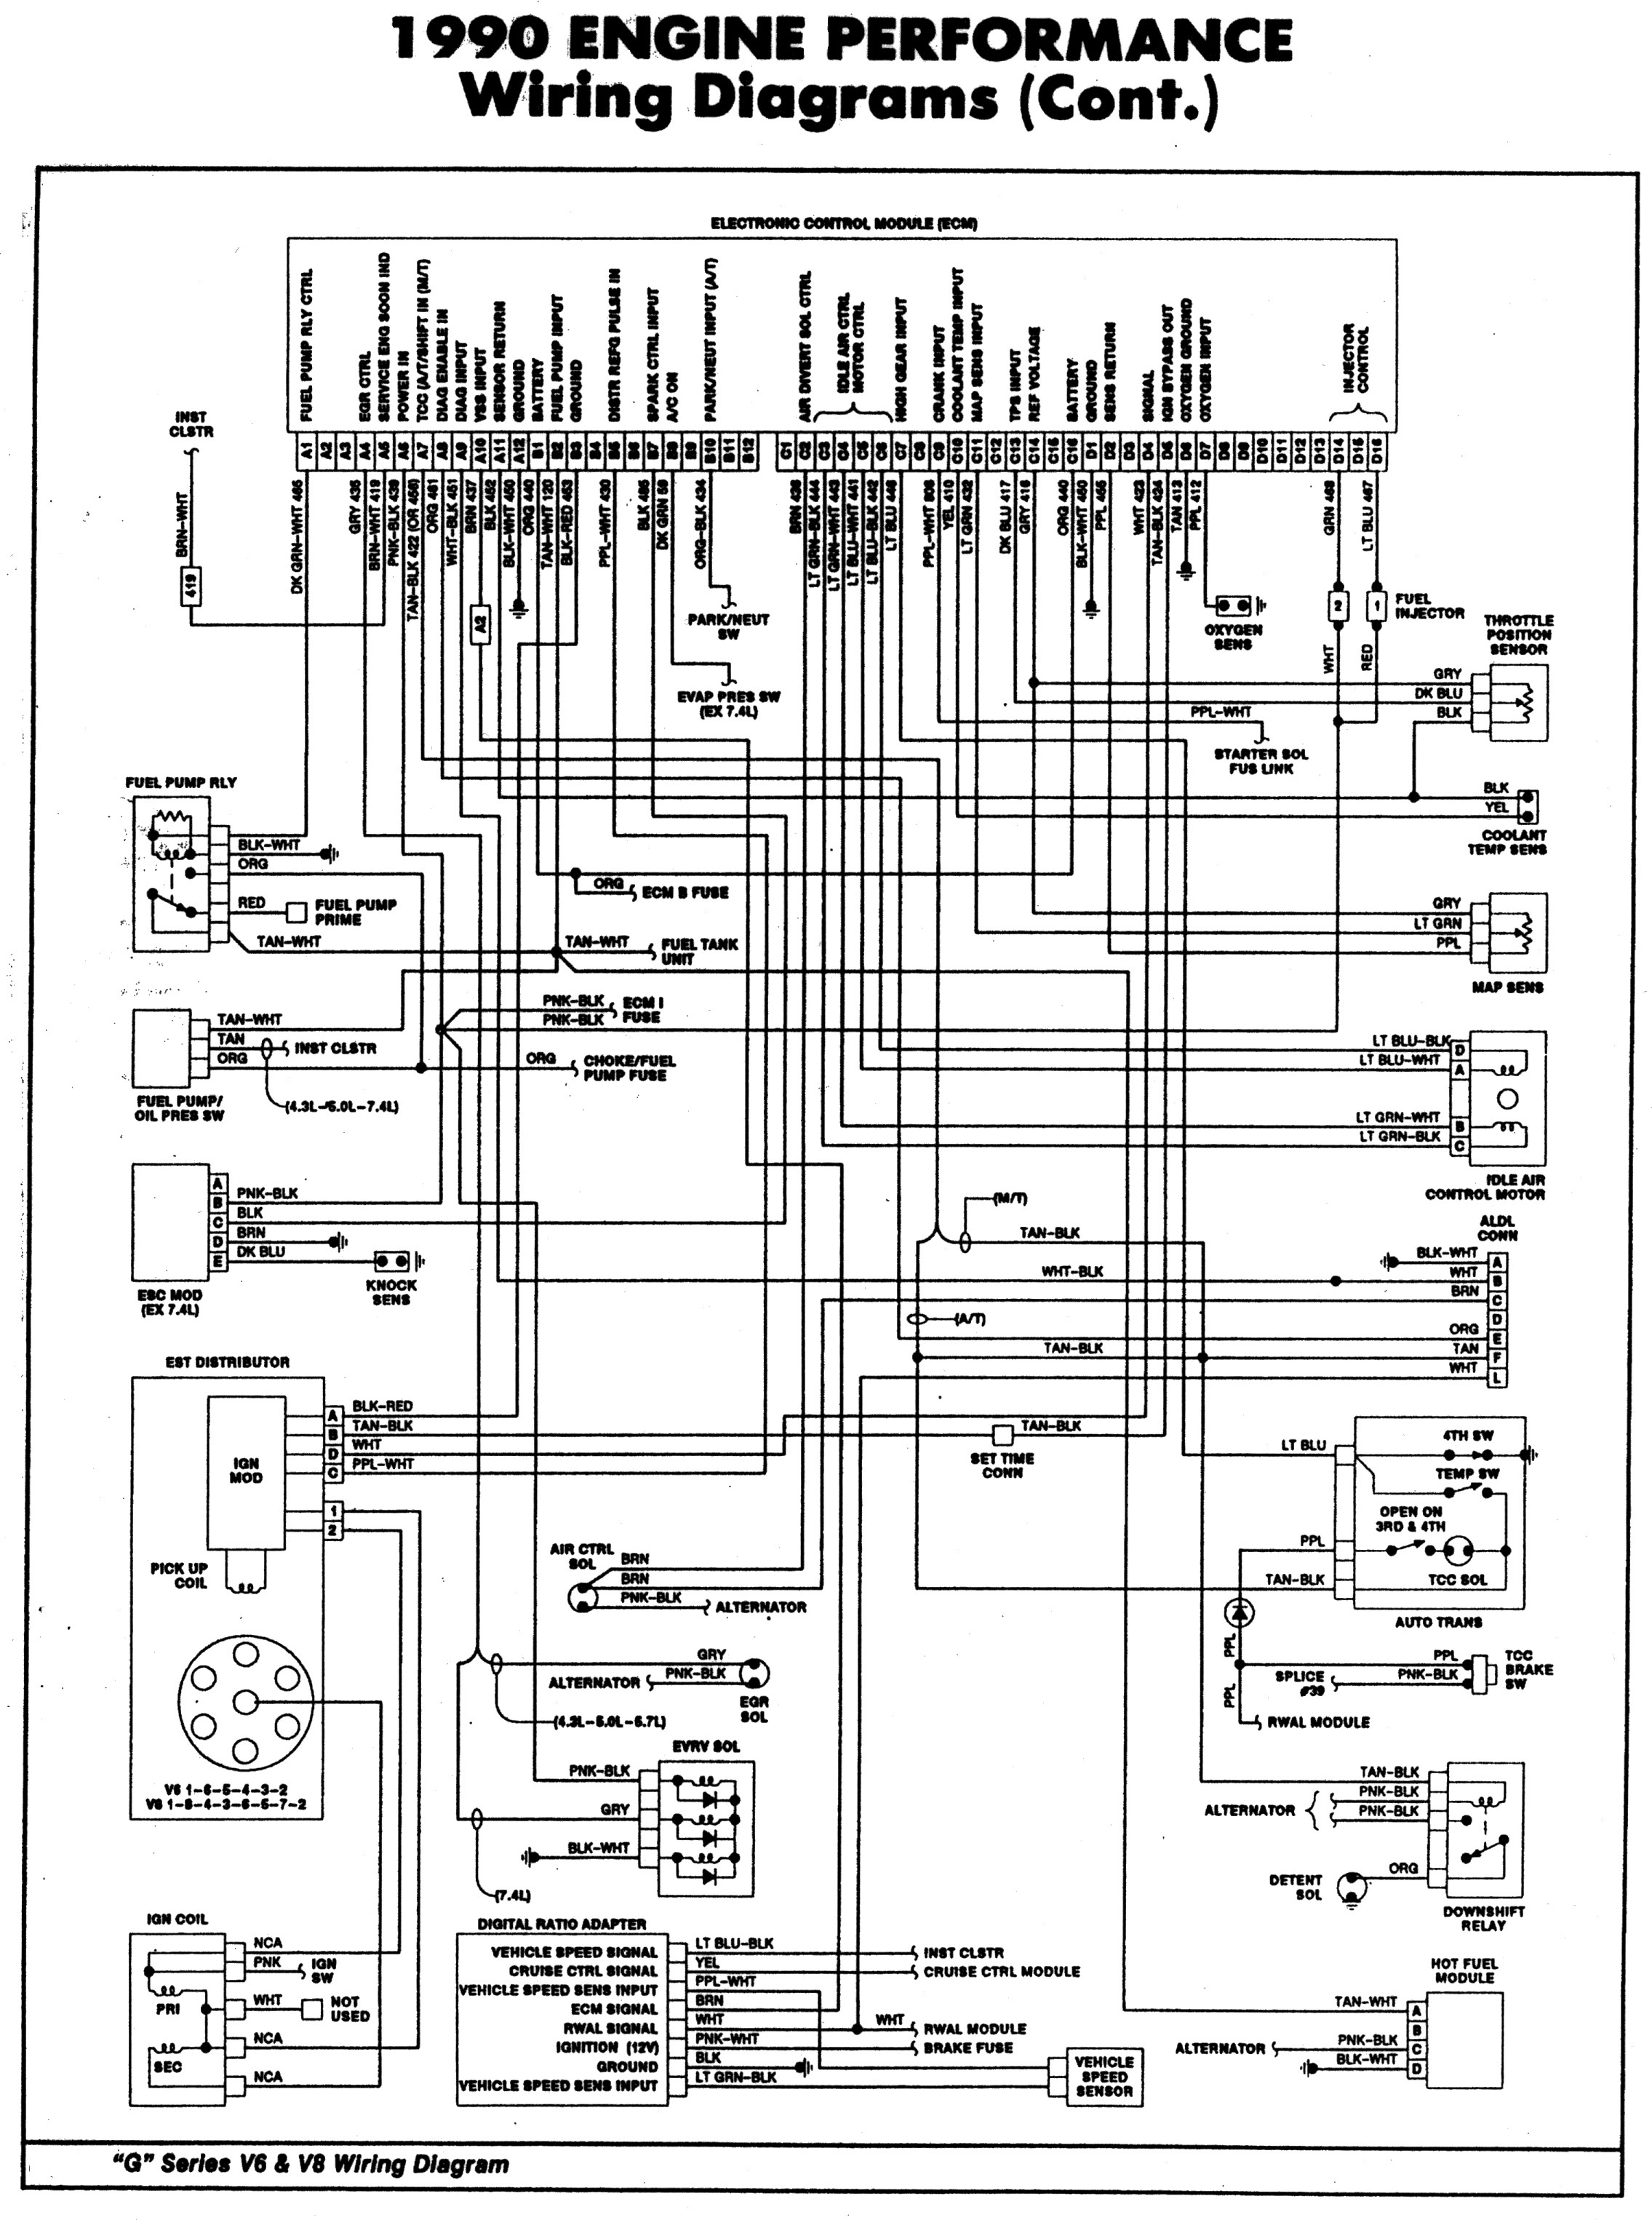 wrg 1641 psl 2000 smoke detector wiring diagram 1990 chevy wiring diagram wiring diagram schematics [ 2271 x 3051 Pixel ]